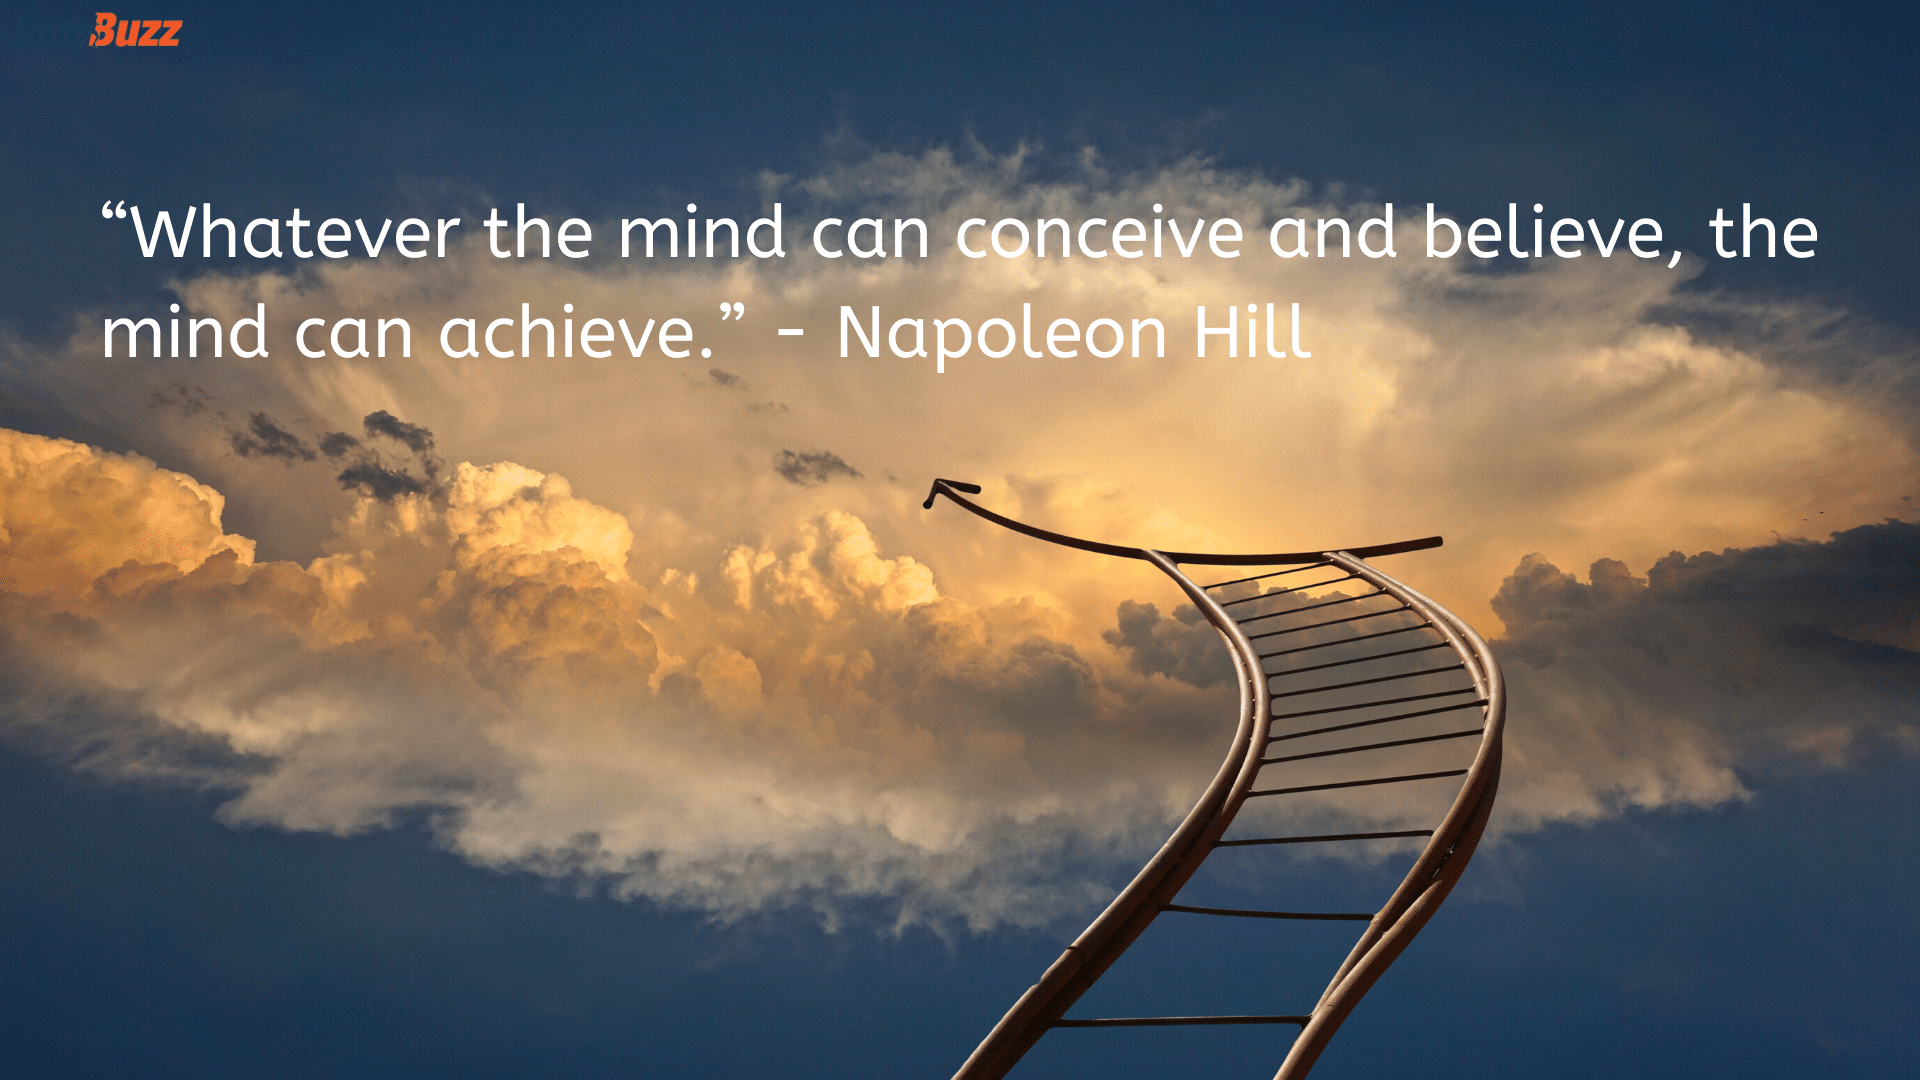 Whatever-the-mind-can-conceive-and-believe-the-mind-can-achieve